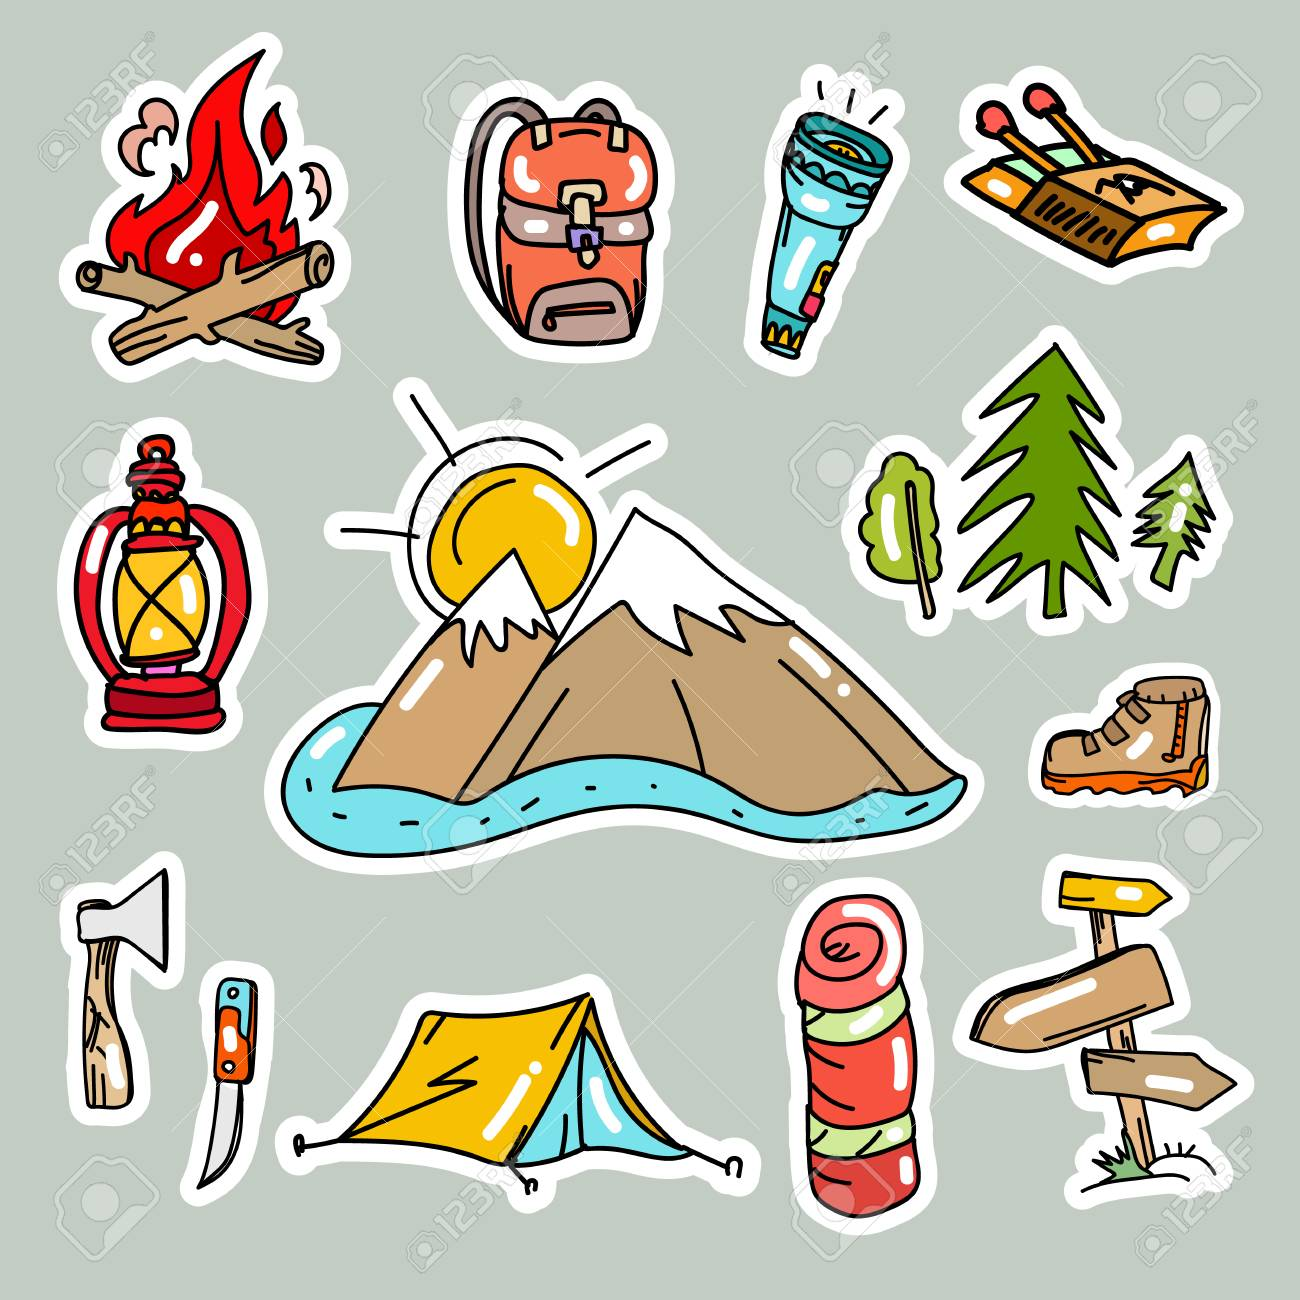 Camping stickers pop art style tourism equipment symbols and icons mountains tent